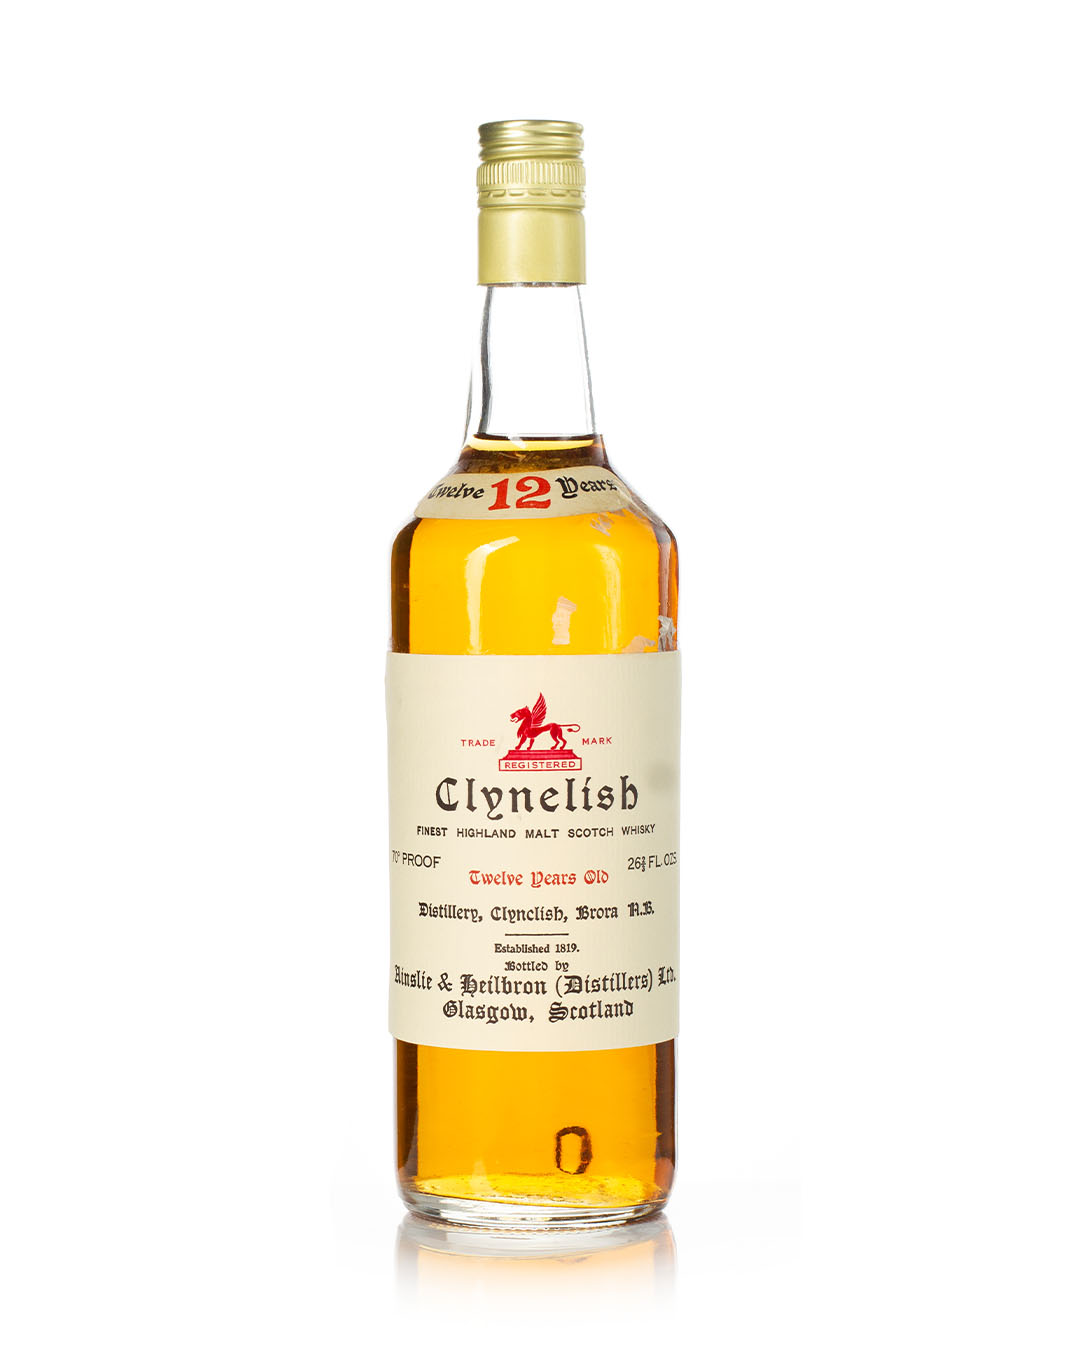 Buy Clynelish 12 year old 70 proof Ainslie & Heilbrown Ltd bottle